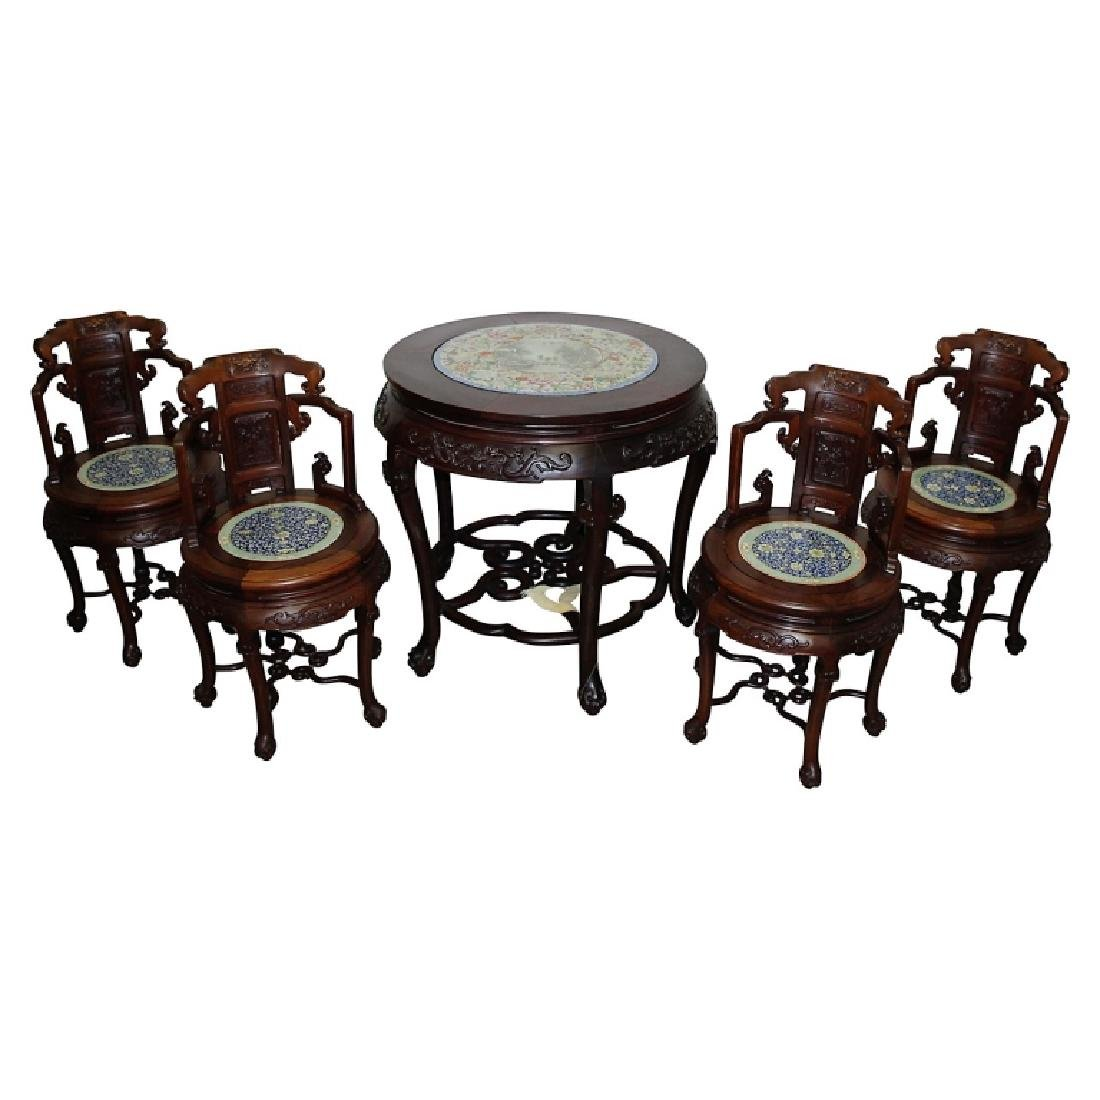 18th/19th Century Chinese Hardwood Table and Chairs